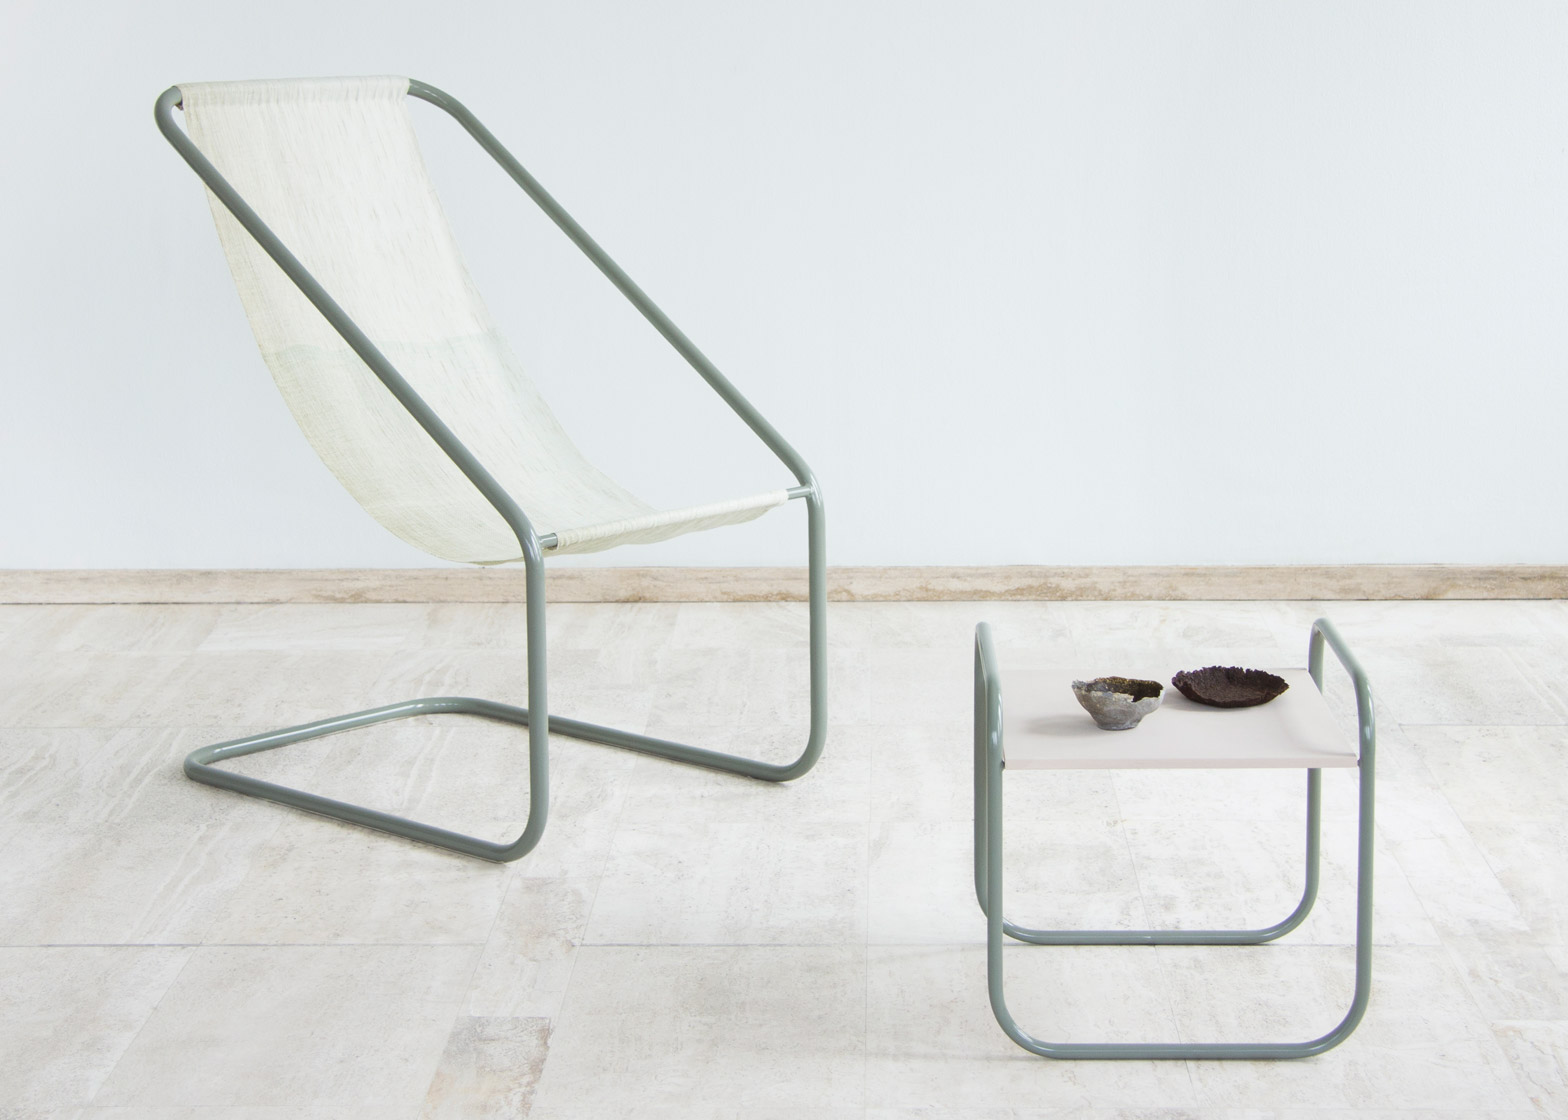 The Sea Me collection by Nienke Hoogvliet uses seaweed as a material